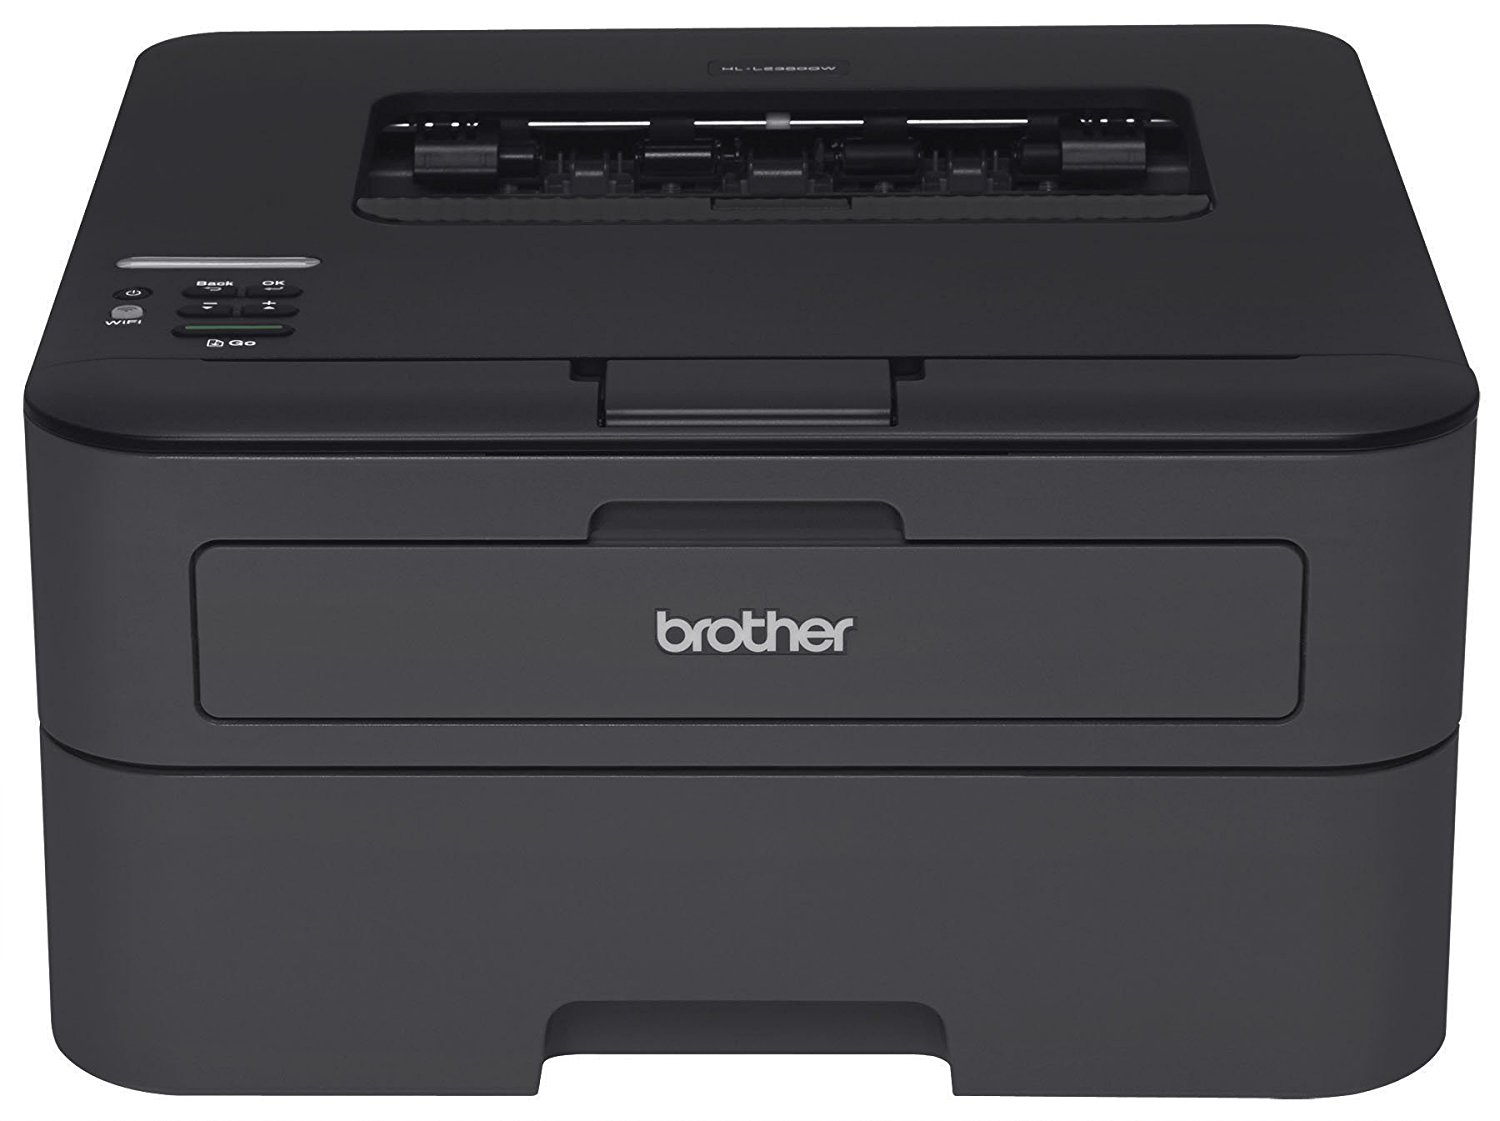 Brother HL-L2340DW Printer Drivers Download